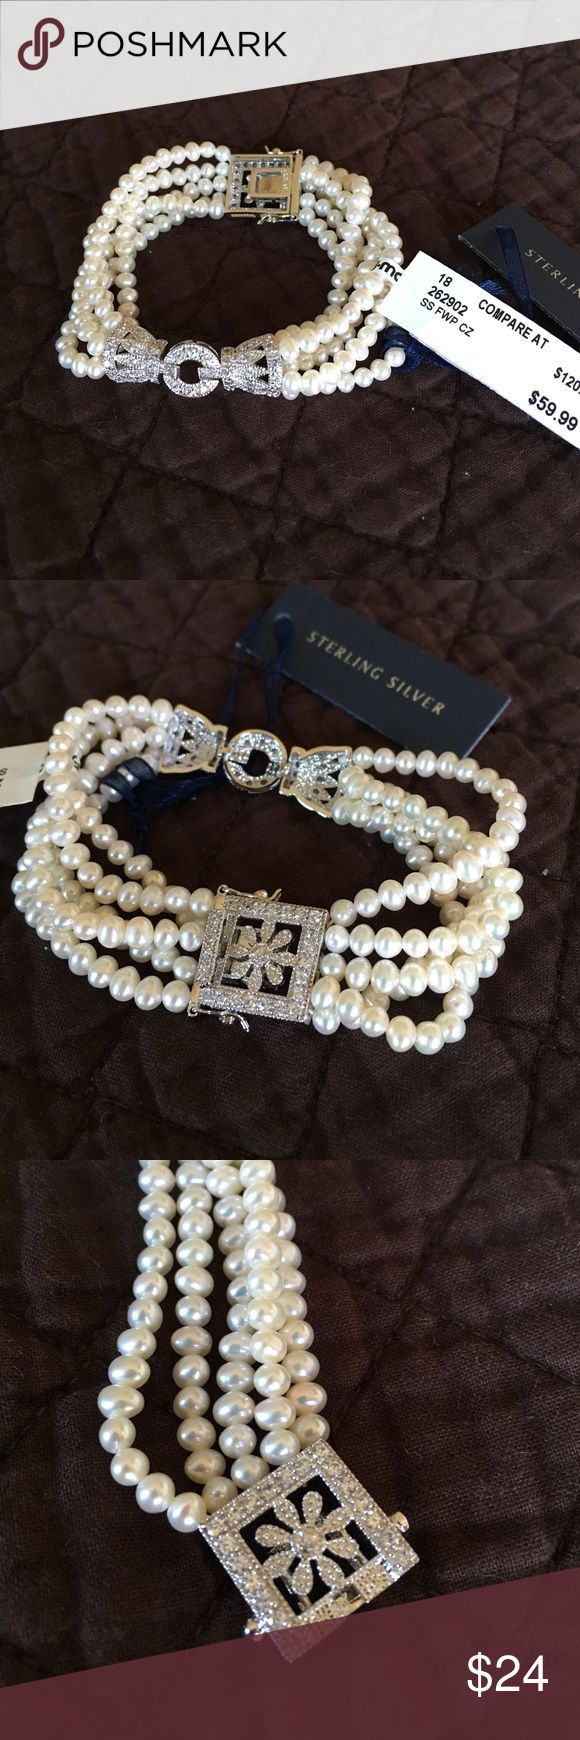 Sterling silver pearl bracelet NWT. Got at TJ Maxx to give as gift and never did. Rhinestones, fake pearls, but sterling silver. Locking clasp so can't get lost. Very elegant! I paid $47 on clearance. Contessa Di Capri Jewelry Bracelets